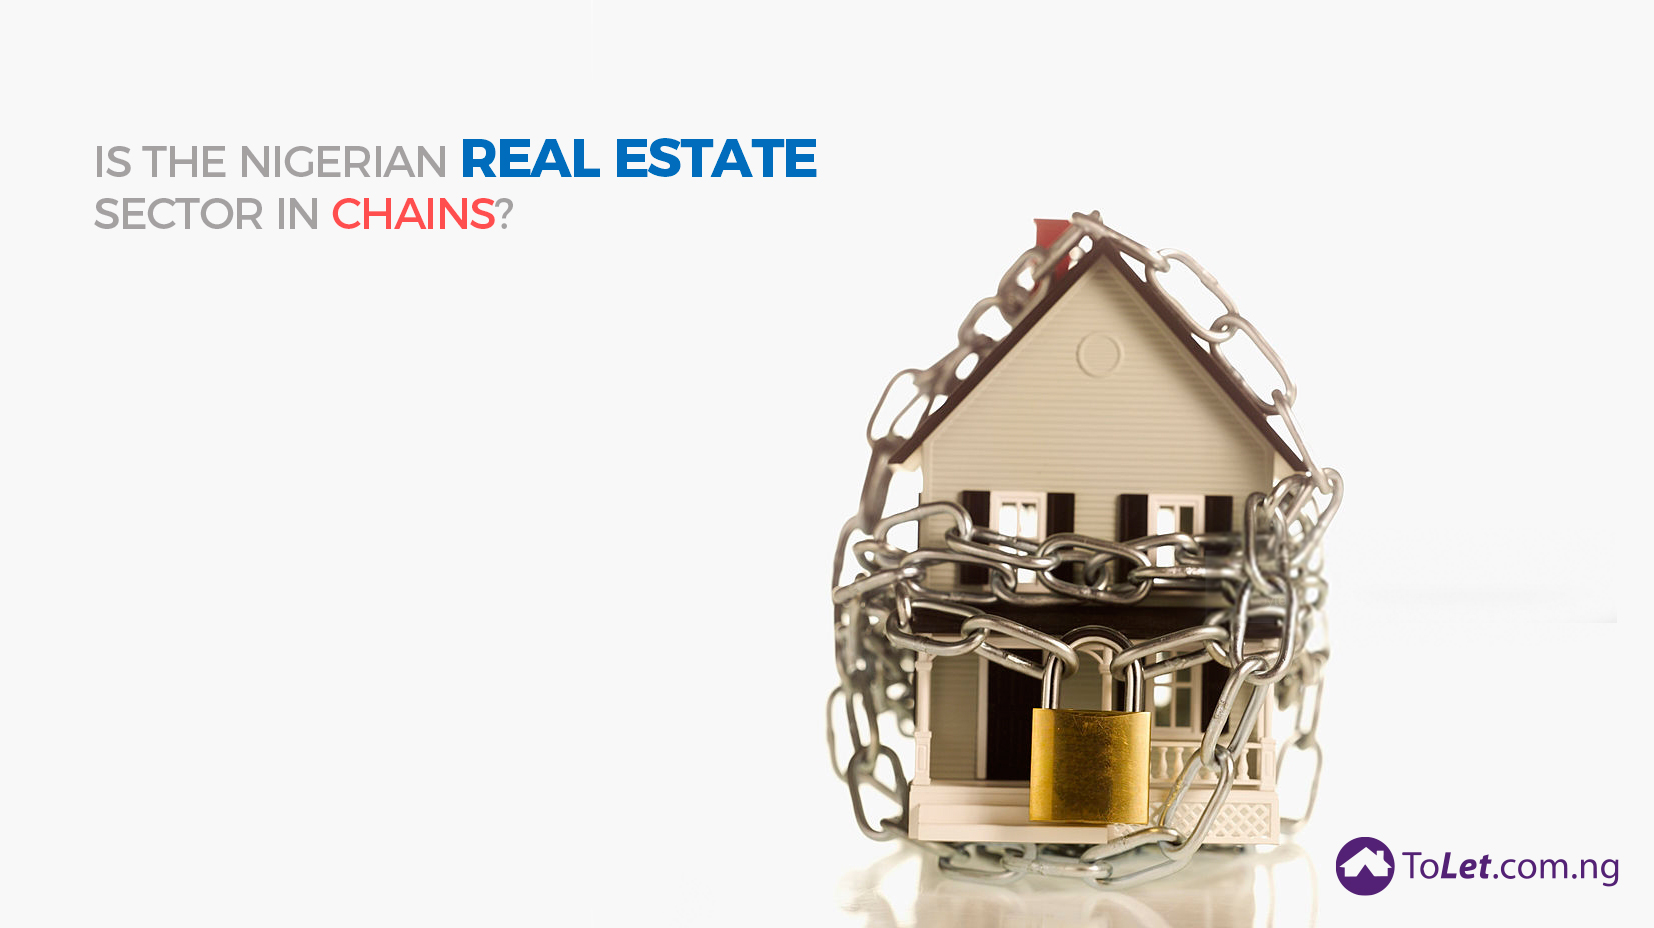 Nigerian Real Estate Sector in Chains